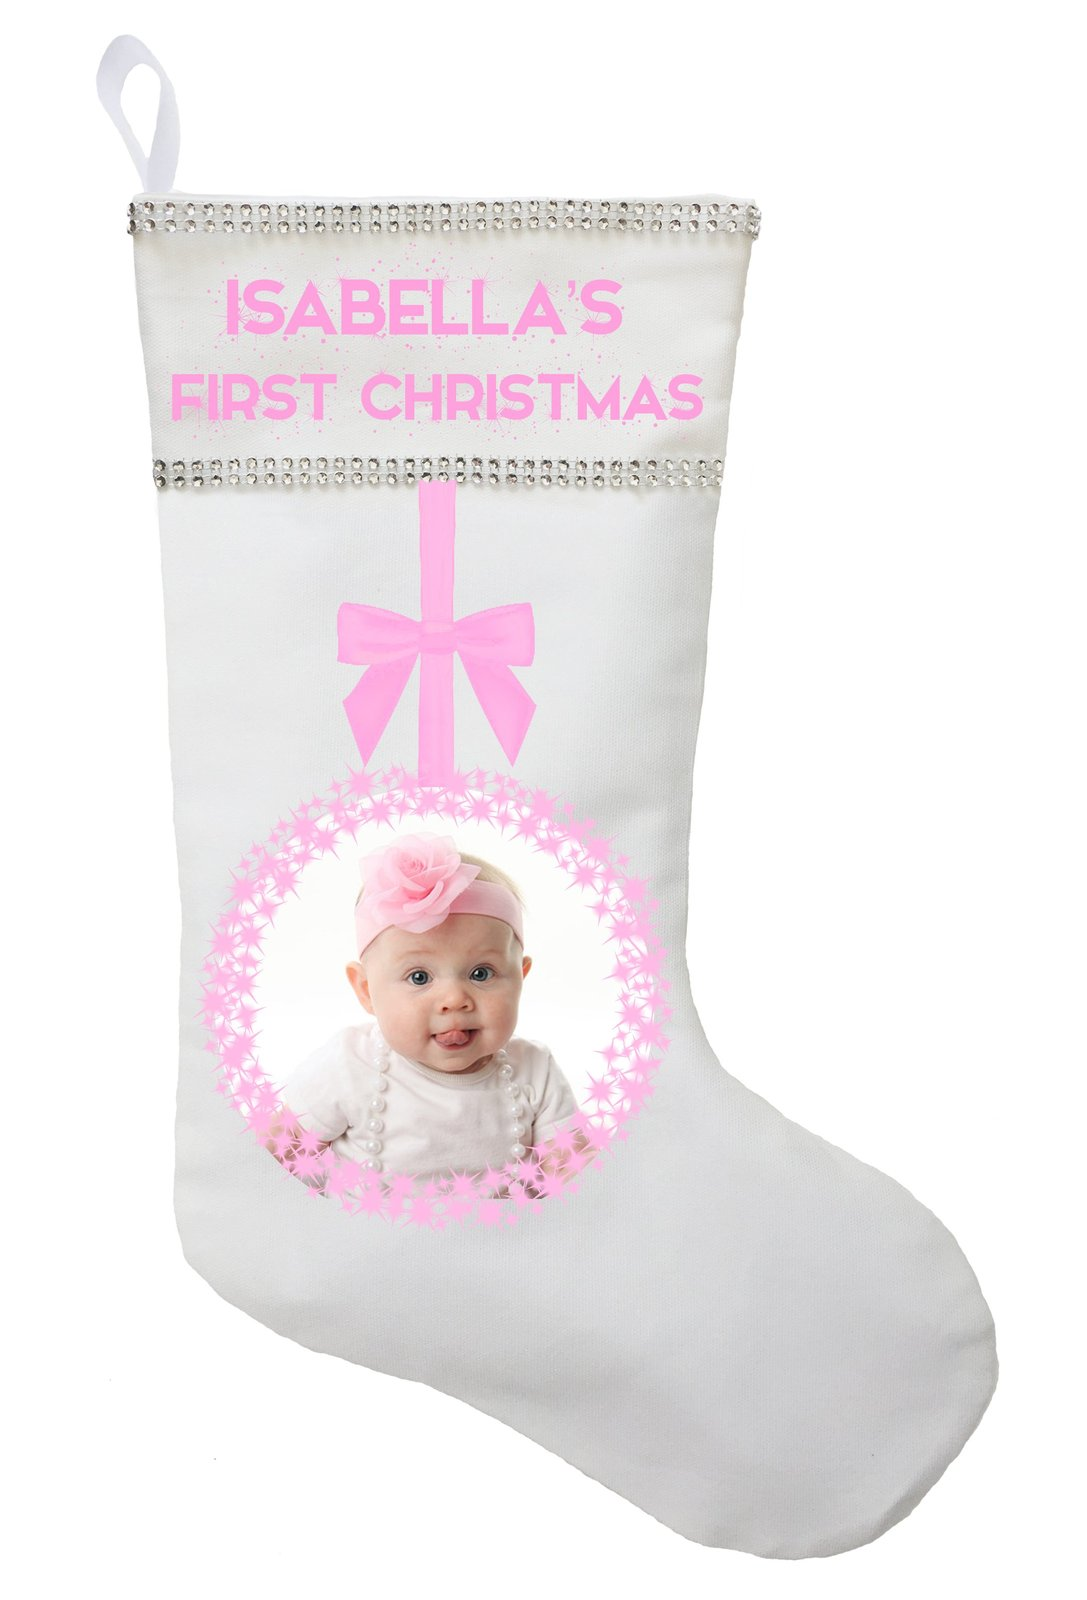 First Christmas Stocking with Photo - Personalized and Hand Made image 3